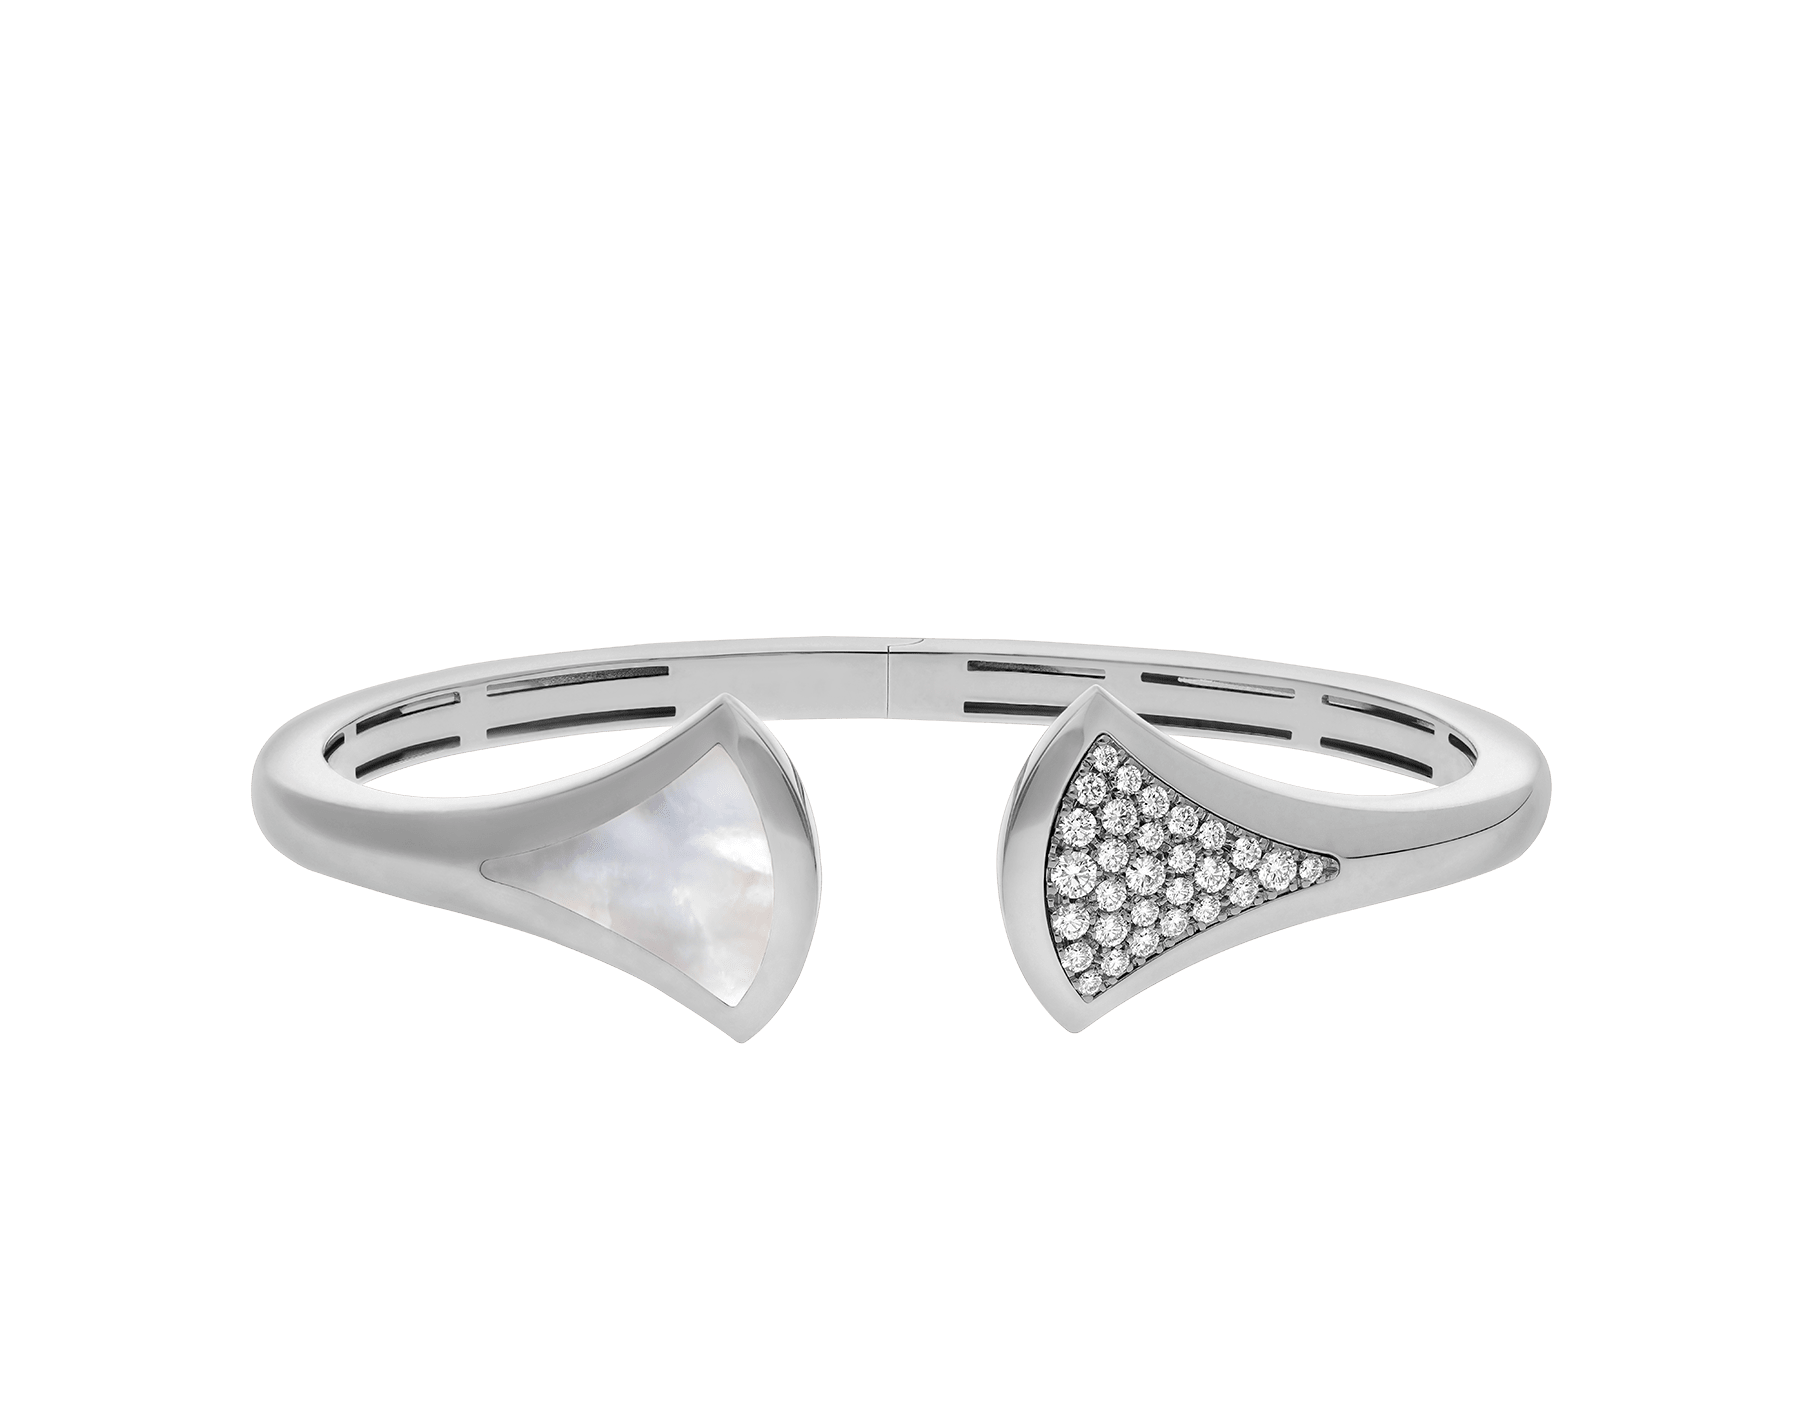 DIVAS' DREAM cuff bracelet in 18 kt white gold, set with mother-of-pearl and pavé diamonds (0.45 ct). BR857959 image 2